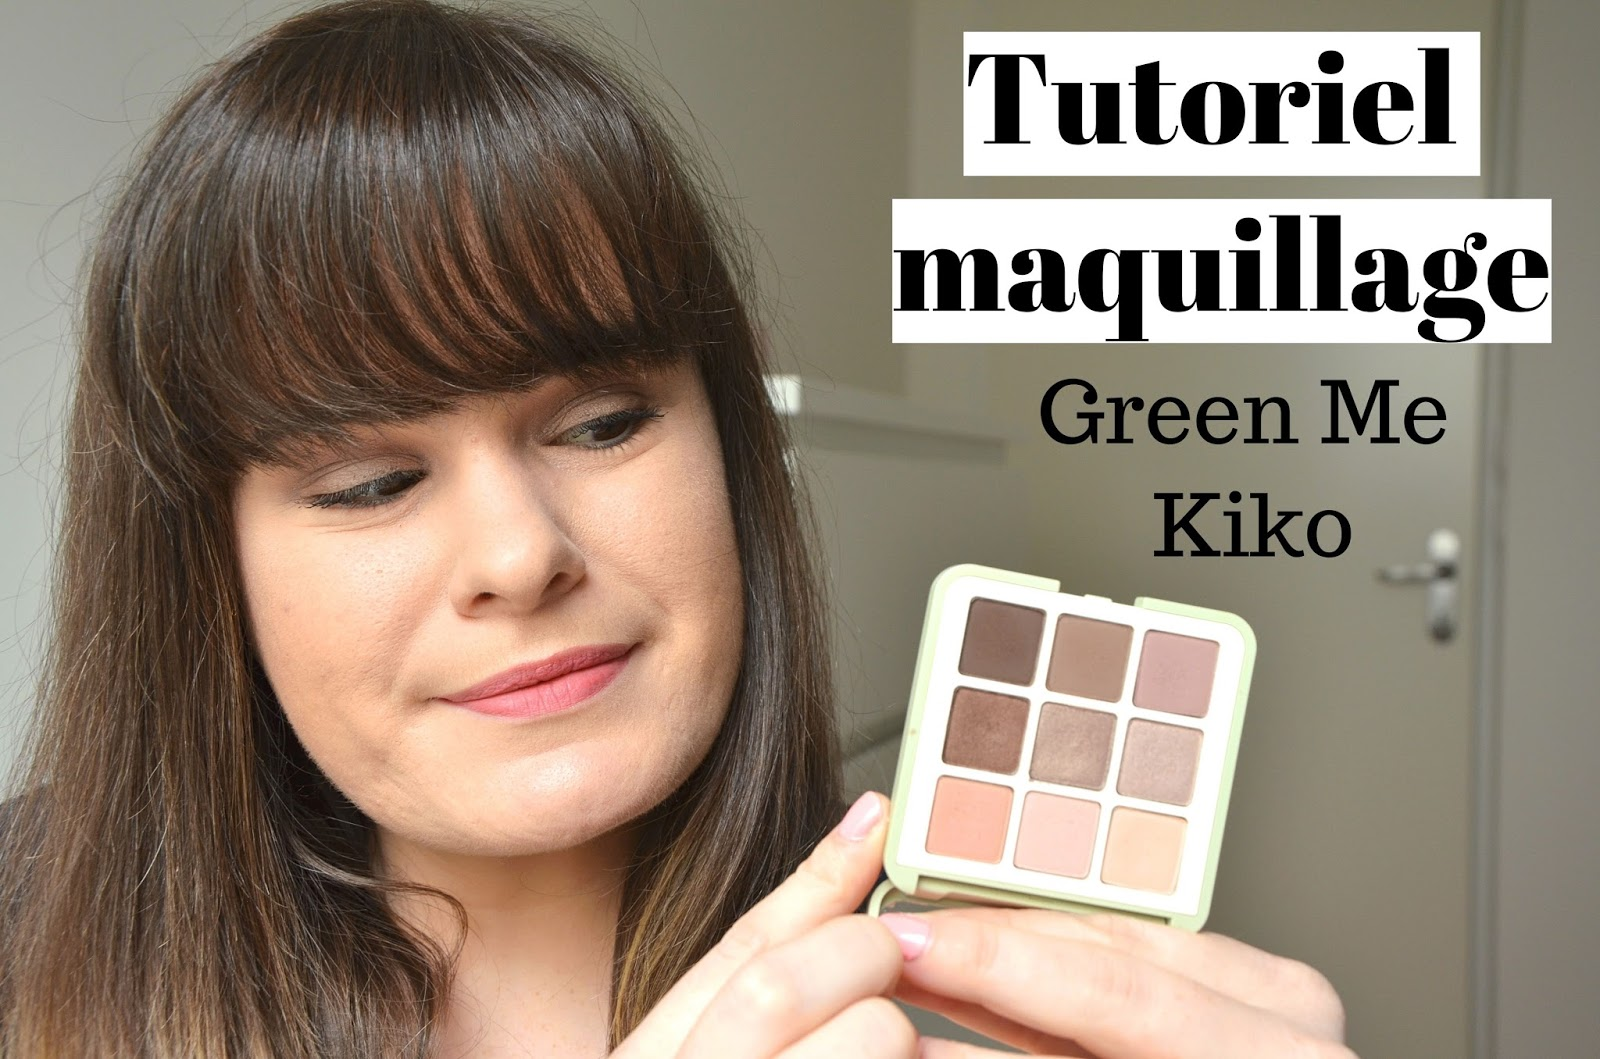 Tutoriel maquillage palette 01 Natural Credential green me de kiko miniature youtube